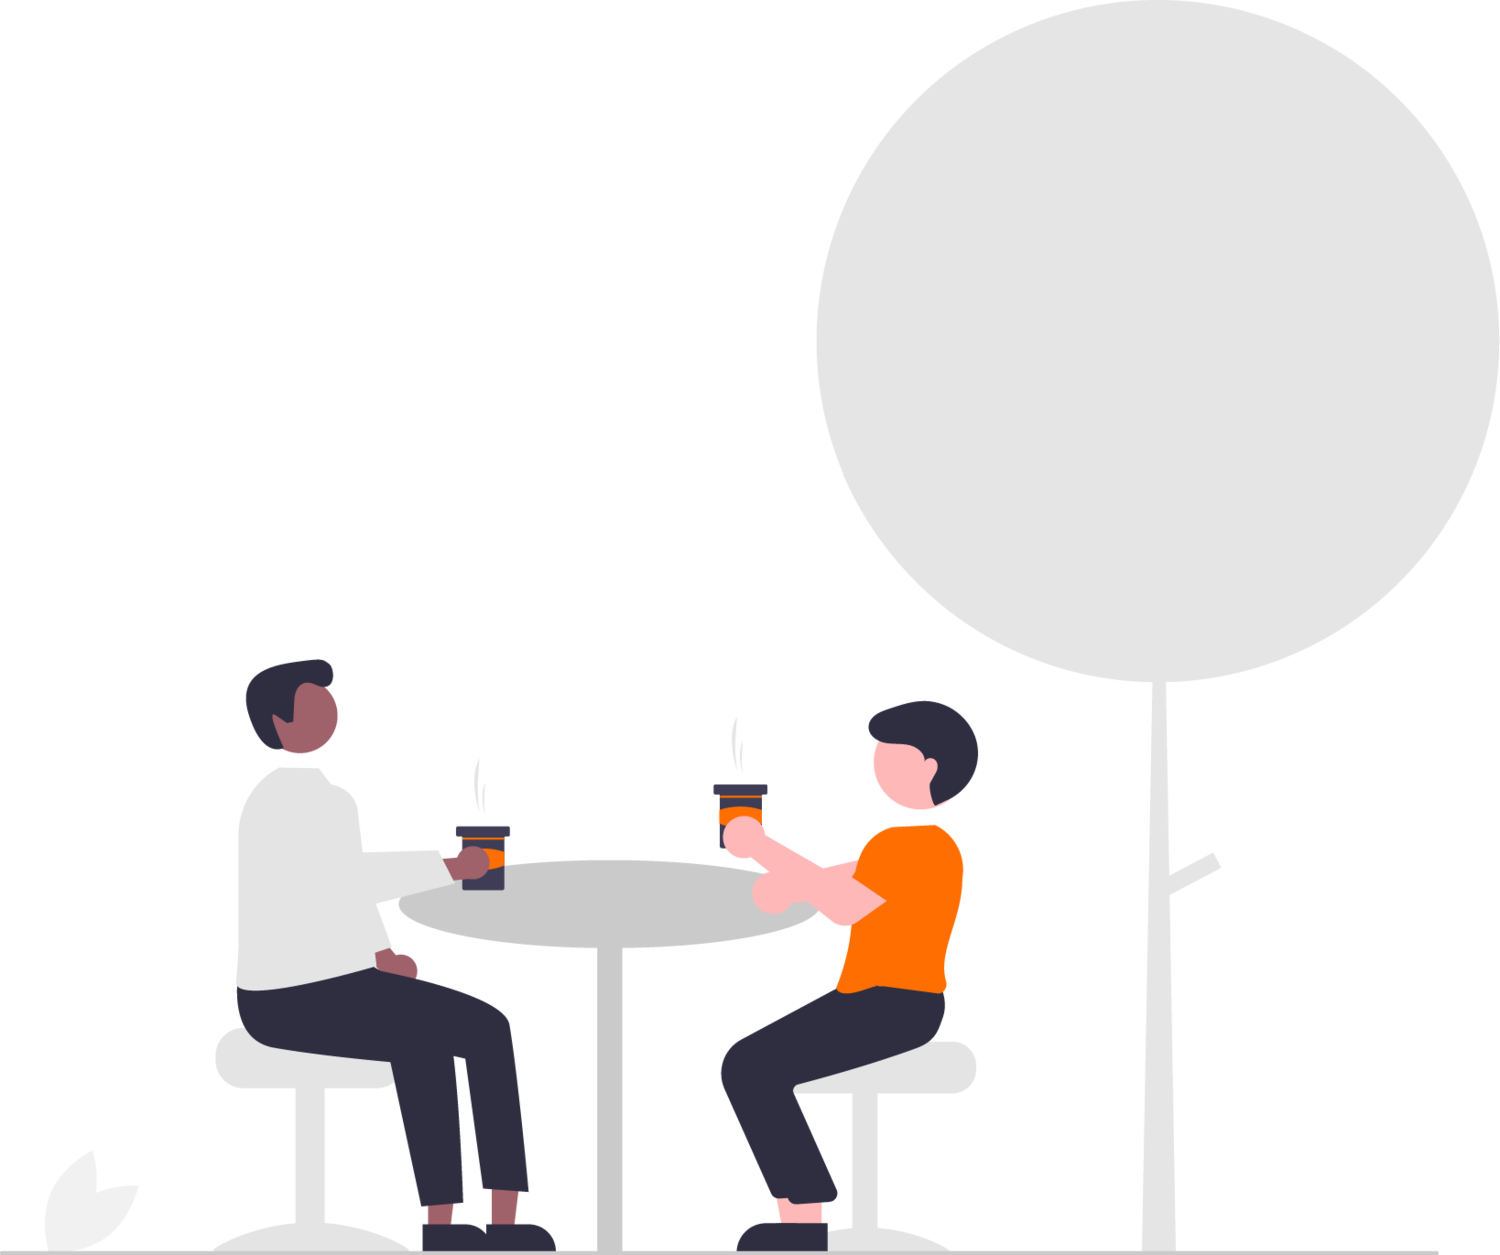 graphic of two people sitting outside at a table